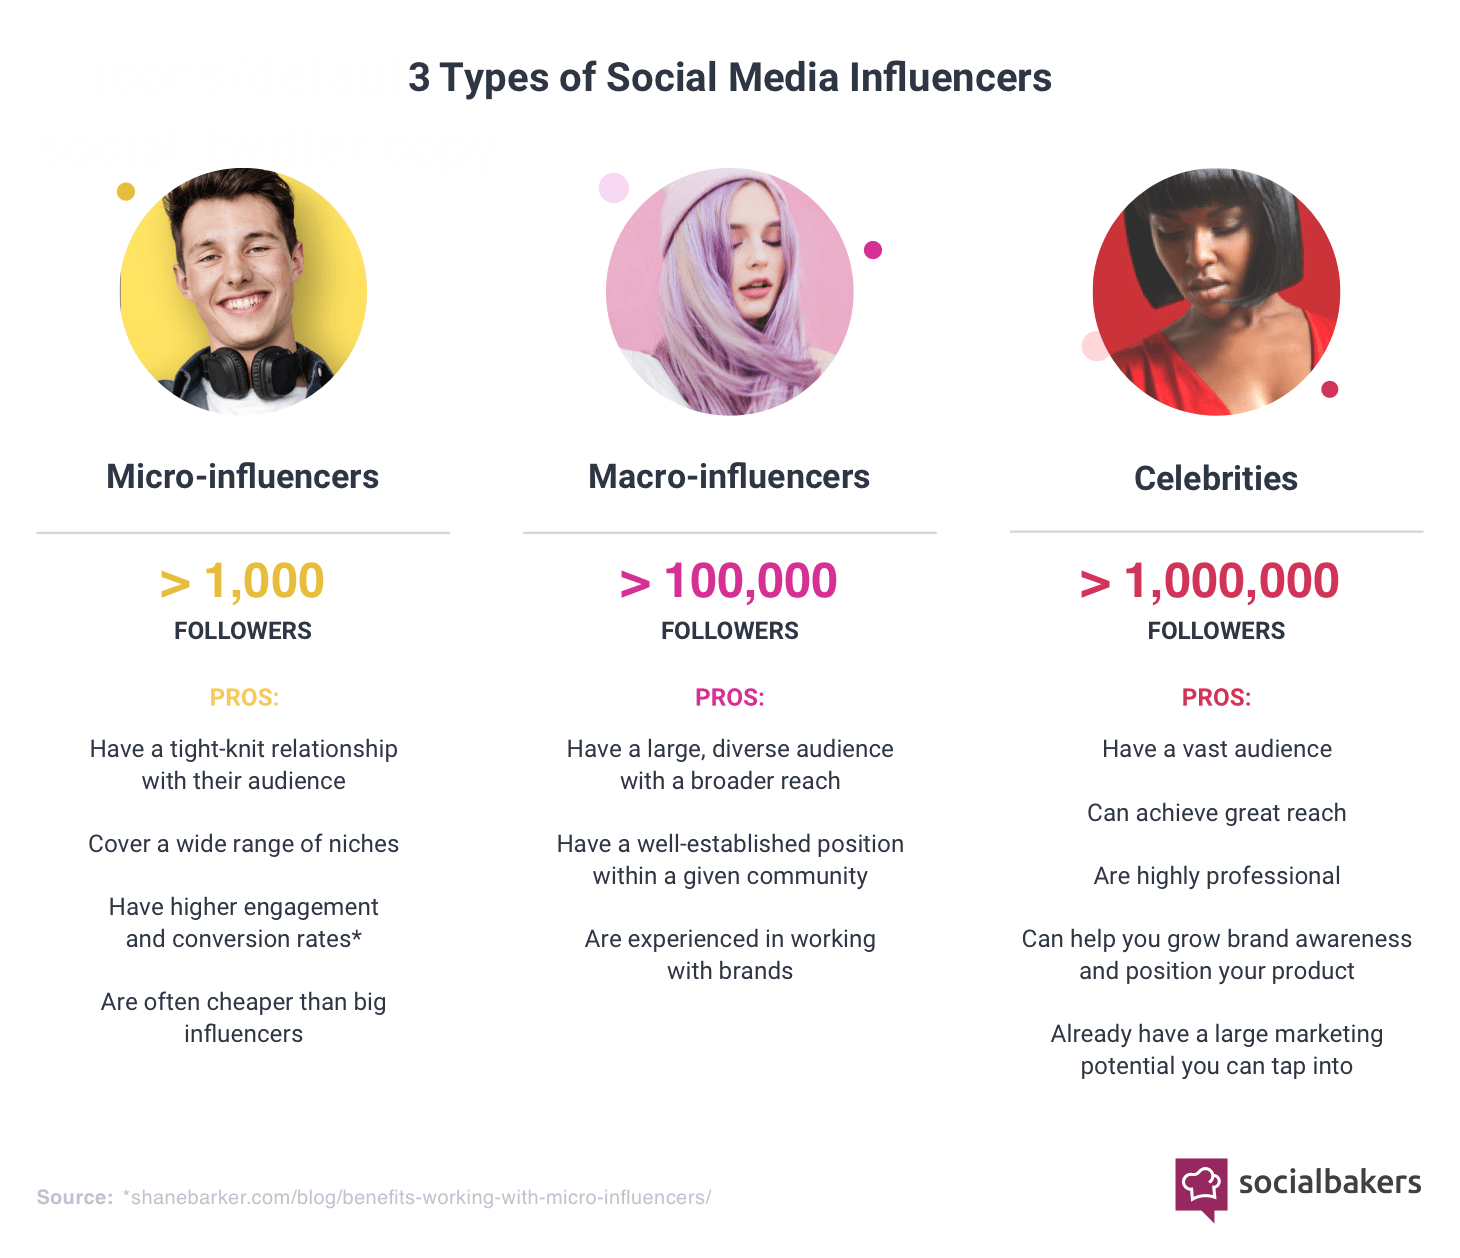 Types of Social Media Influencers